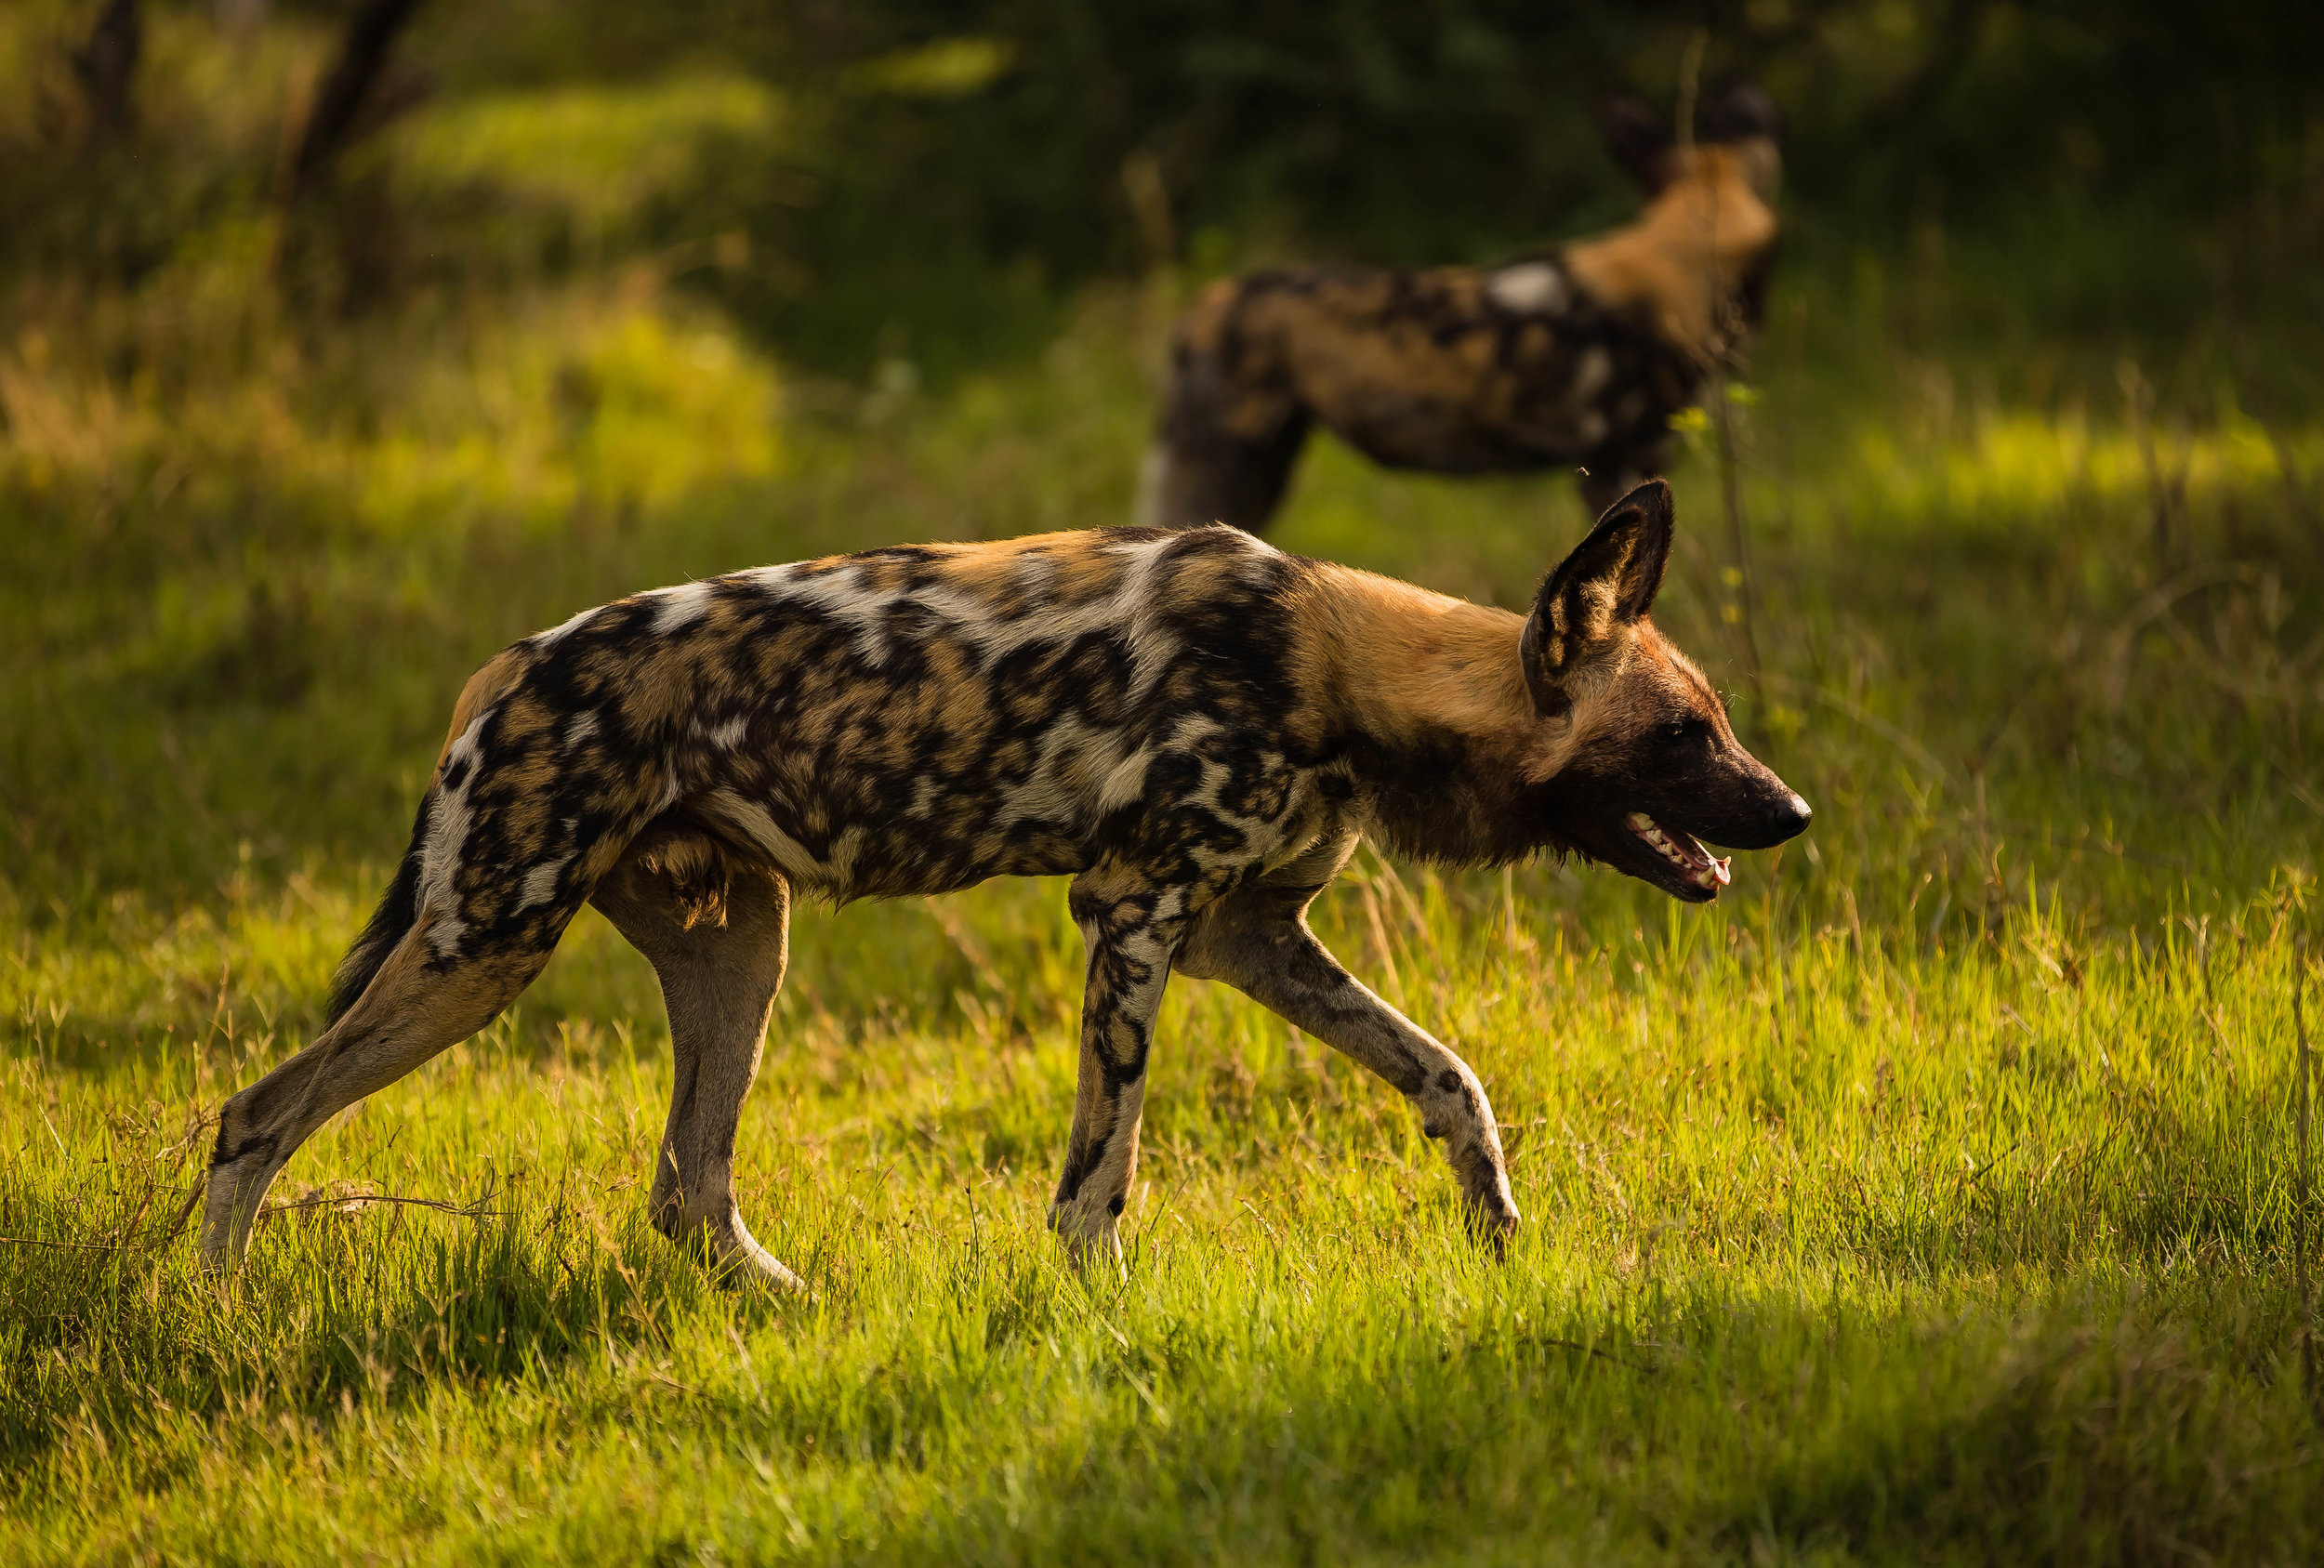 Wild Dogs in Chief's Island, Botswana